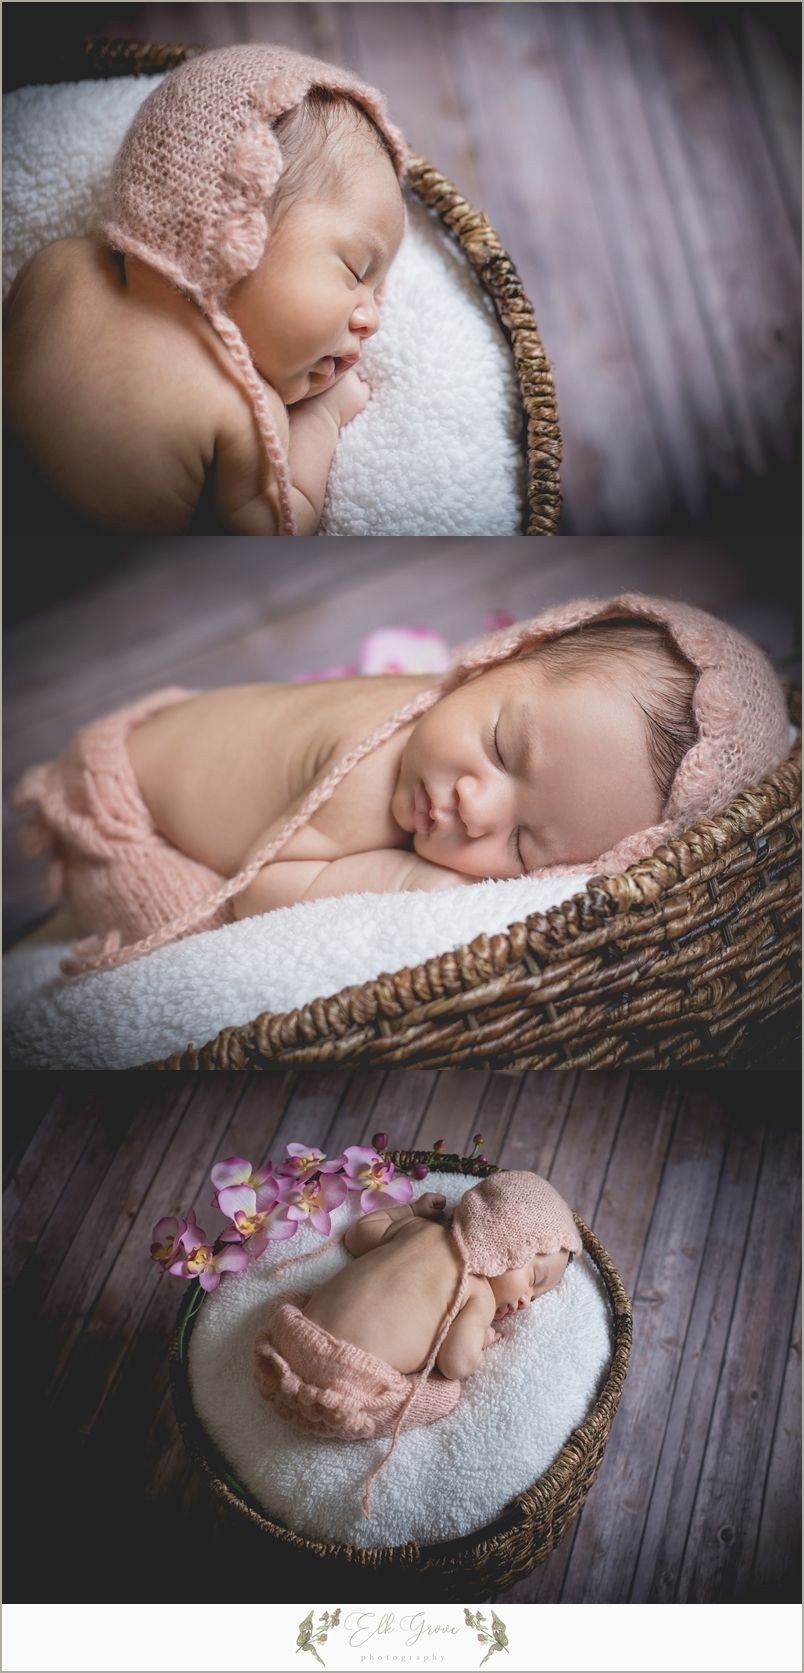 Natural newborn photography poses by elk grove photography natural light posing ideas for newborn girls unposed newborn ideas props